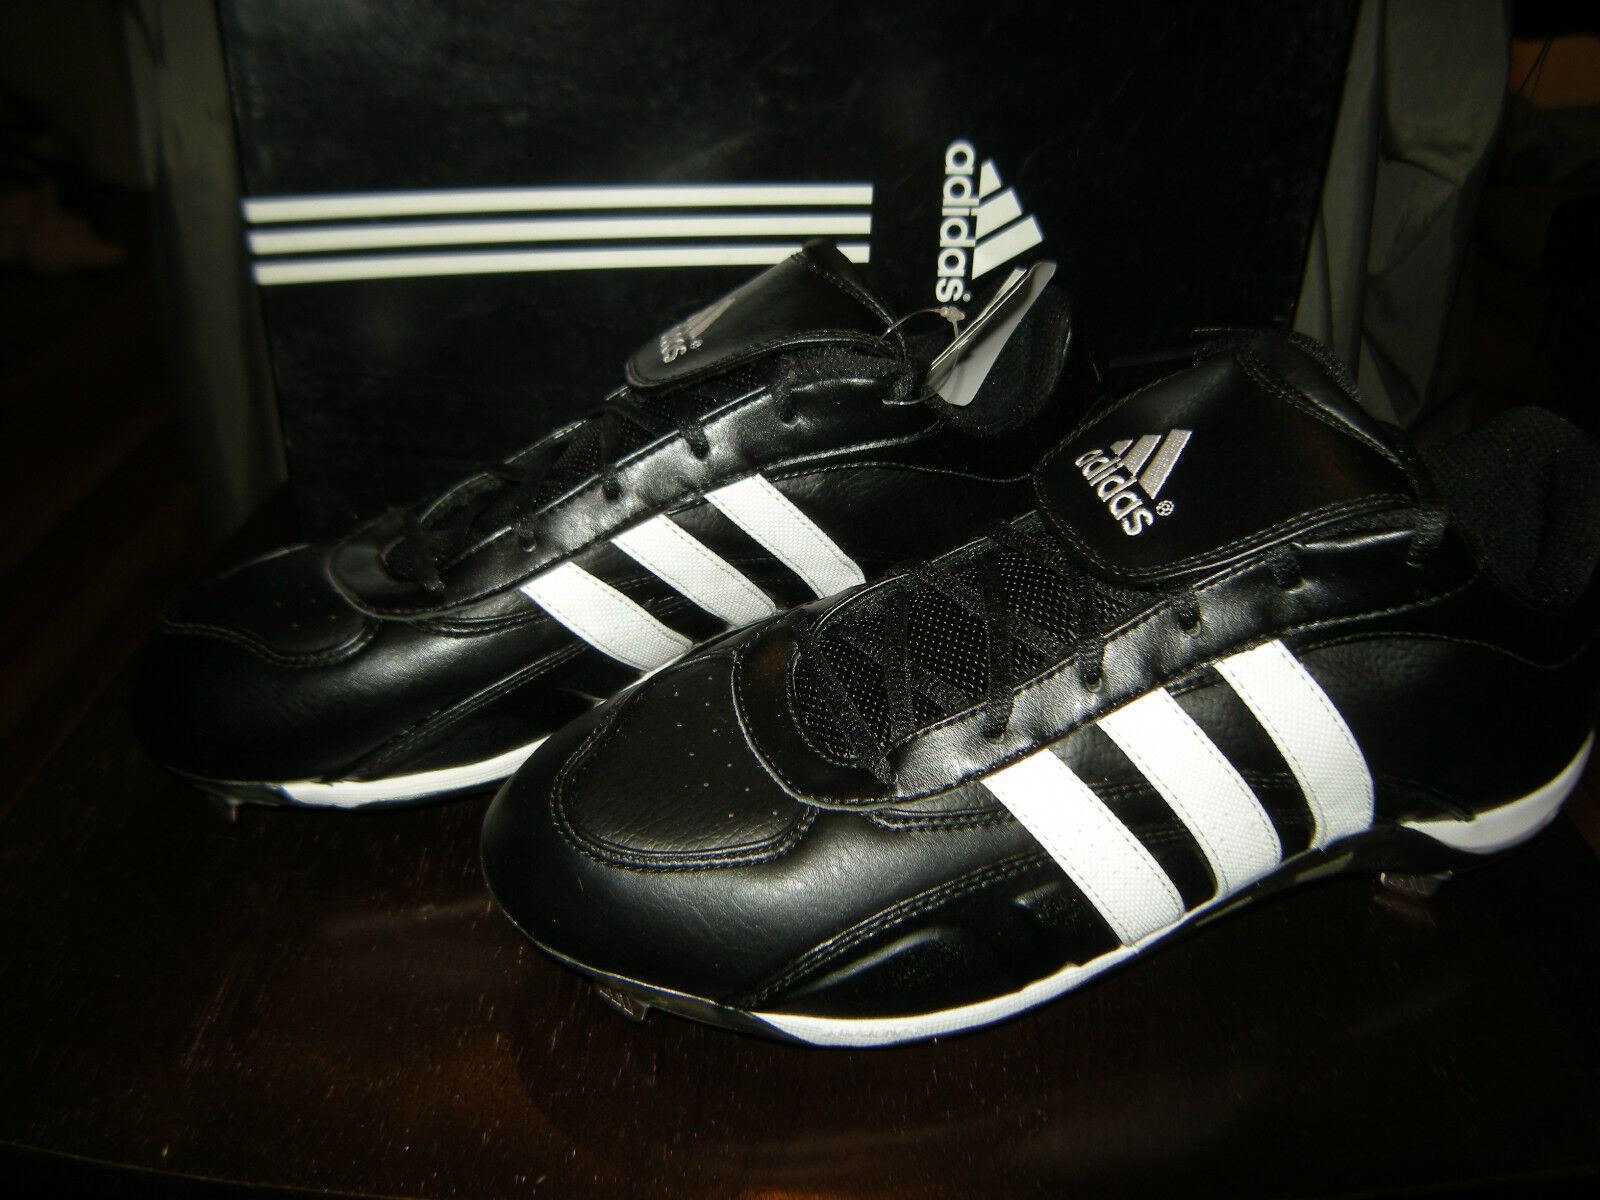 Brand New Mens Black & White Adidas Excelsior 5 Low Metal Baseball Cleats, 12.5 Seasonal price cuts, discount benefits